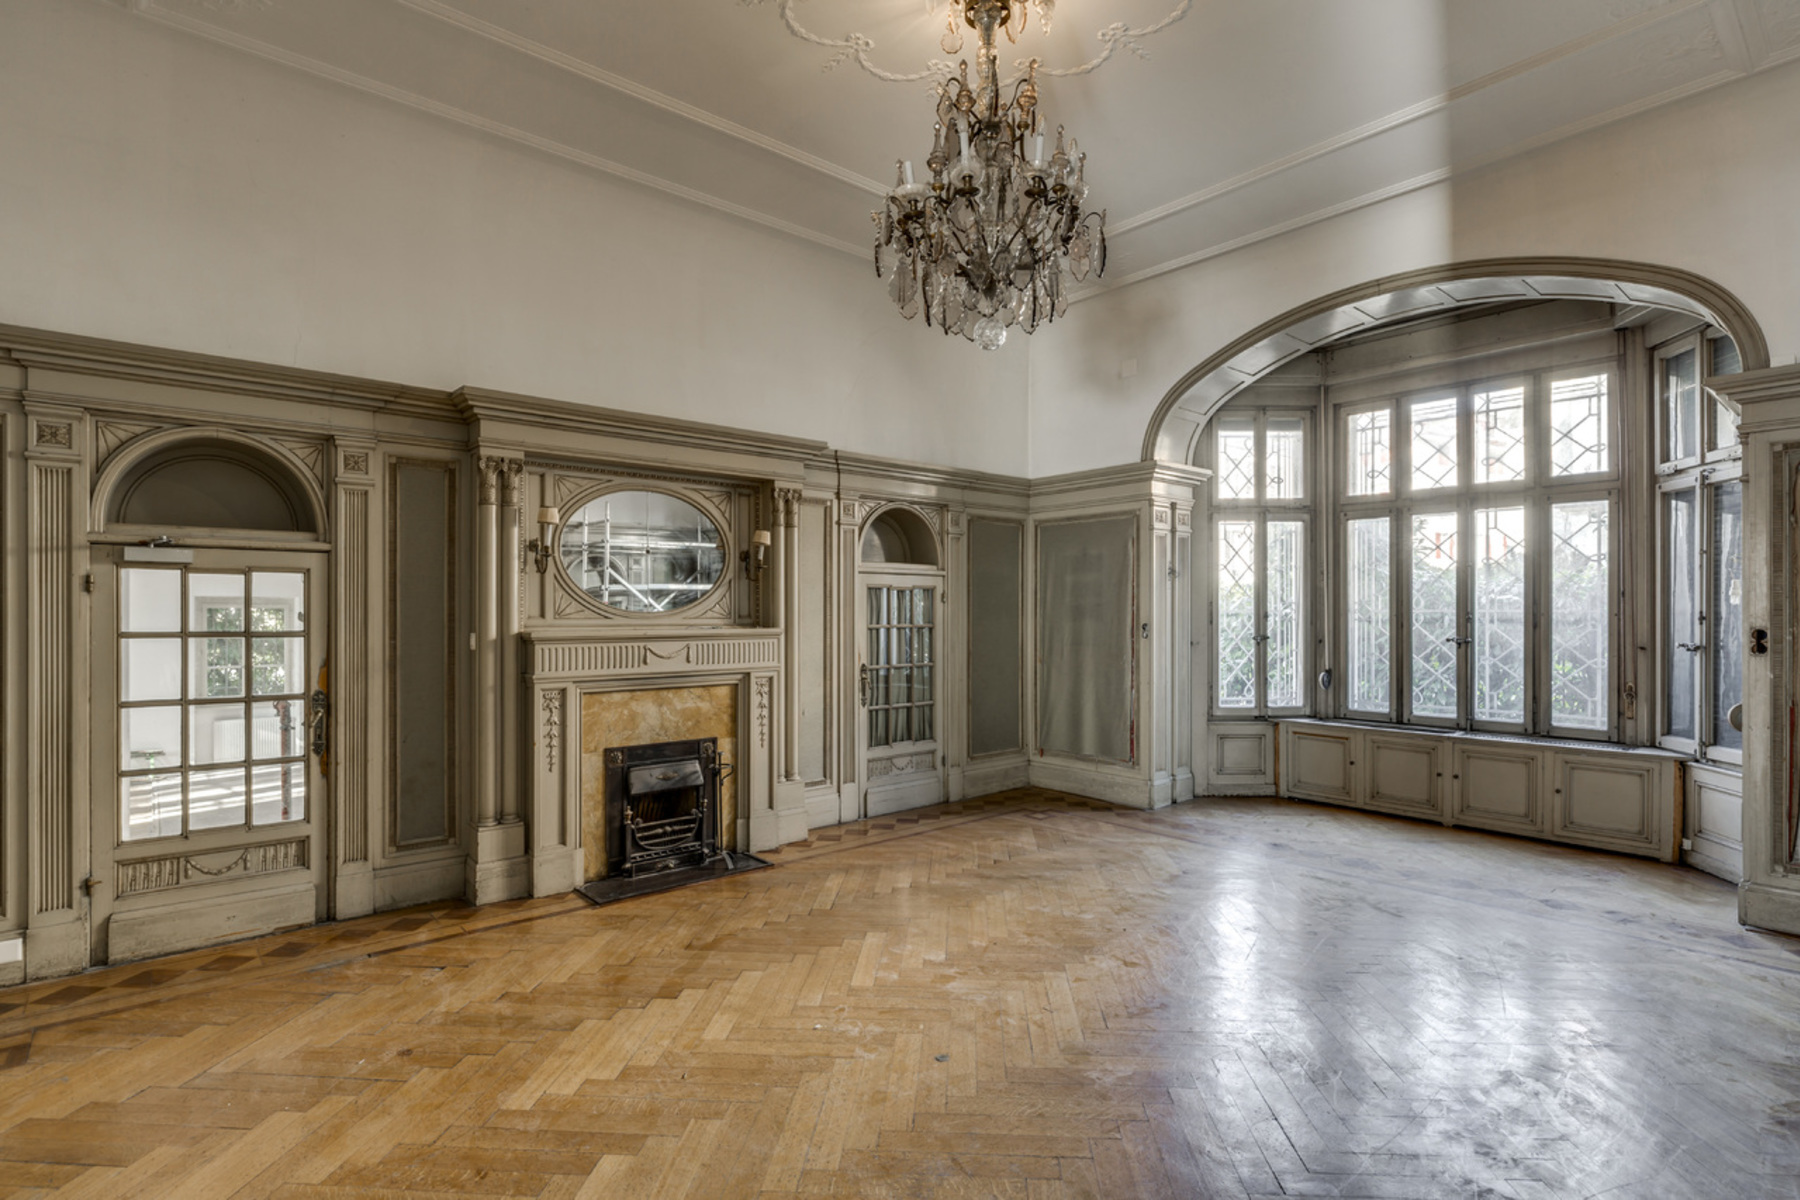 Additional photo for property listing at Spectacular historic château, prime location with breathtaking views Clarens 蒙特勒, 沃州 1820 瑞士